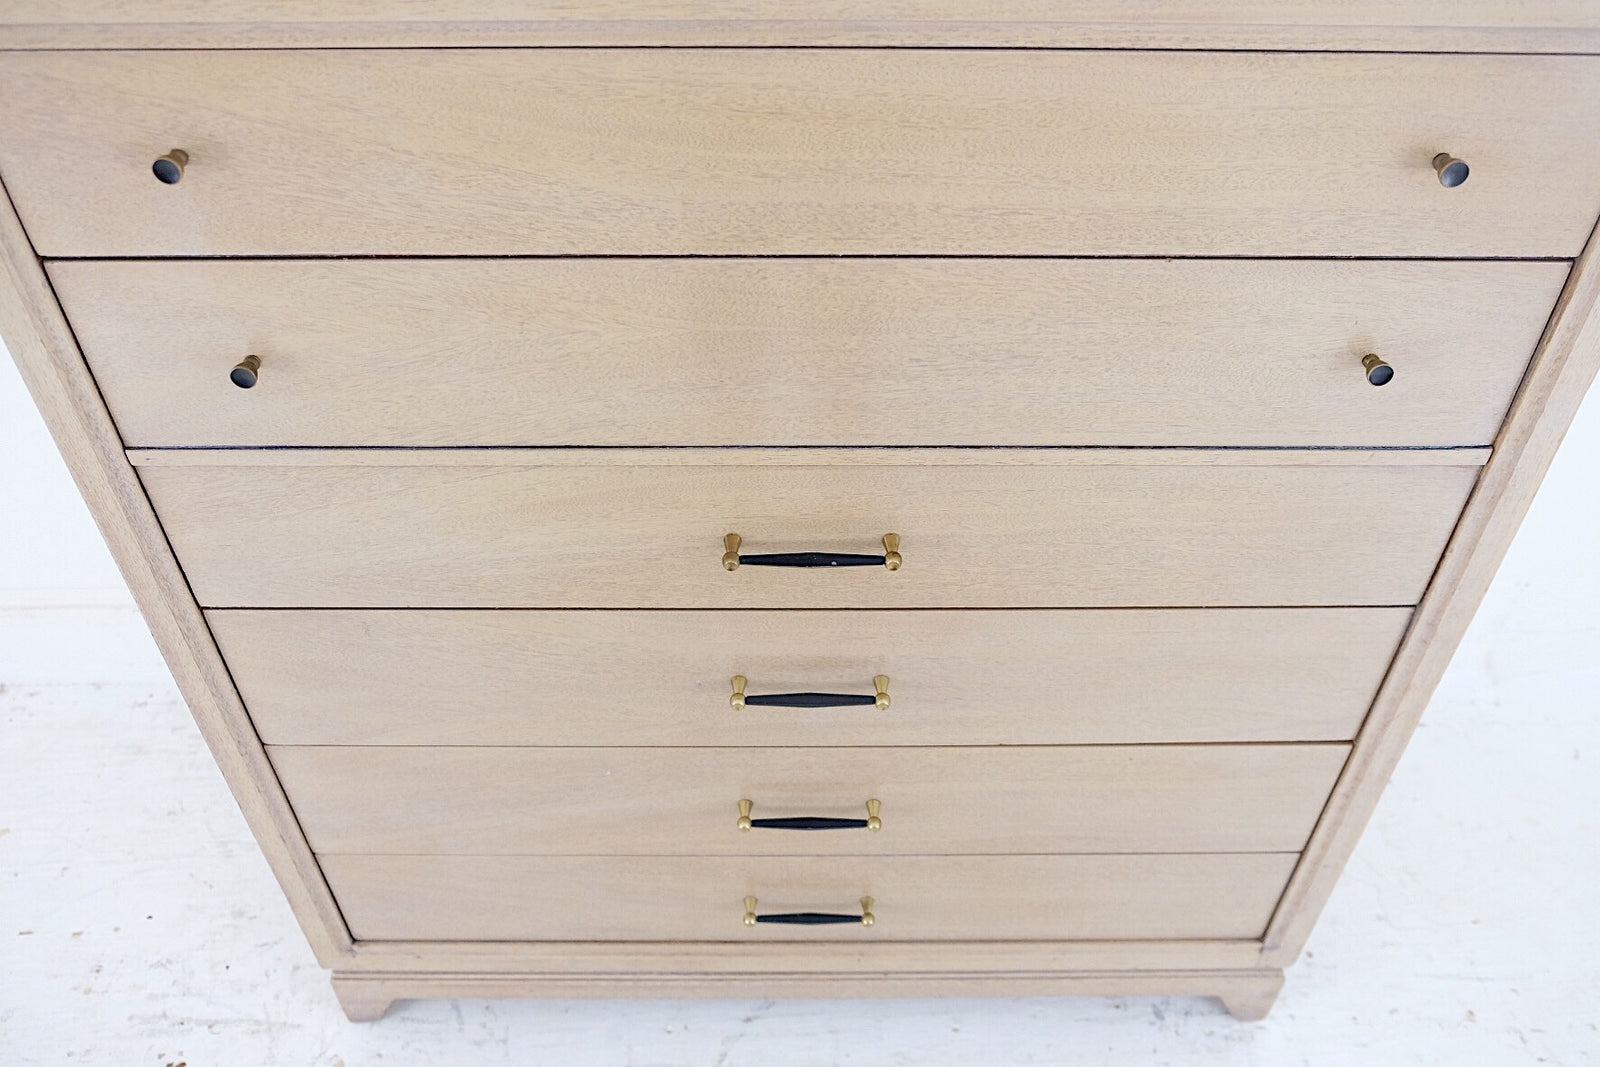 United Furniture Co Bleached White Finish Mahogany Tall Dresser Five Drawers Mid Century Art Deco Black Handles and Knobs